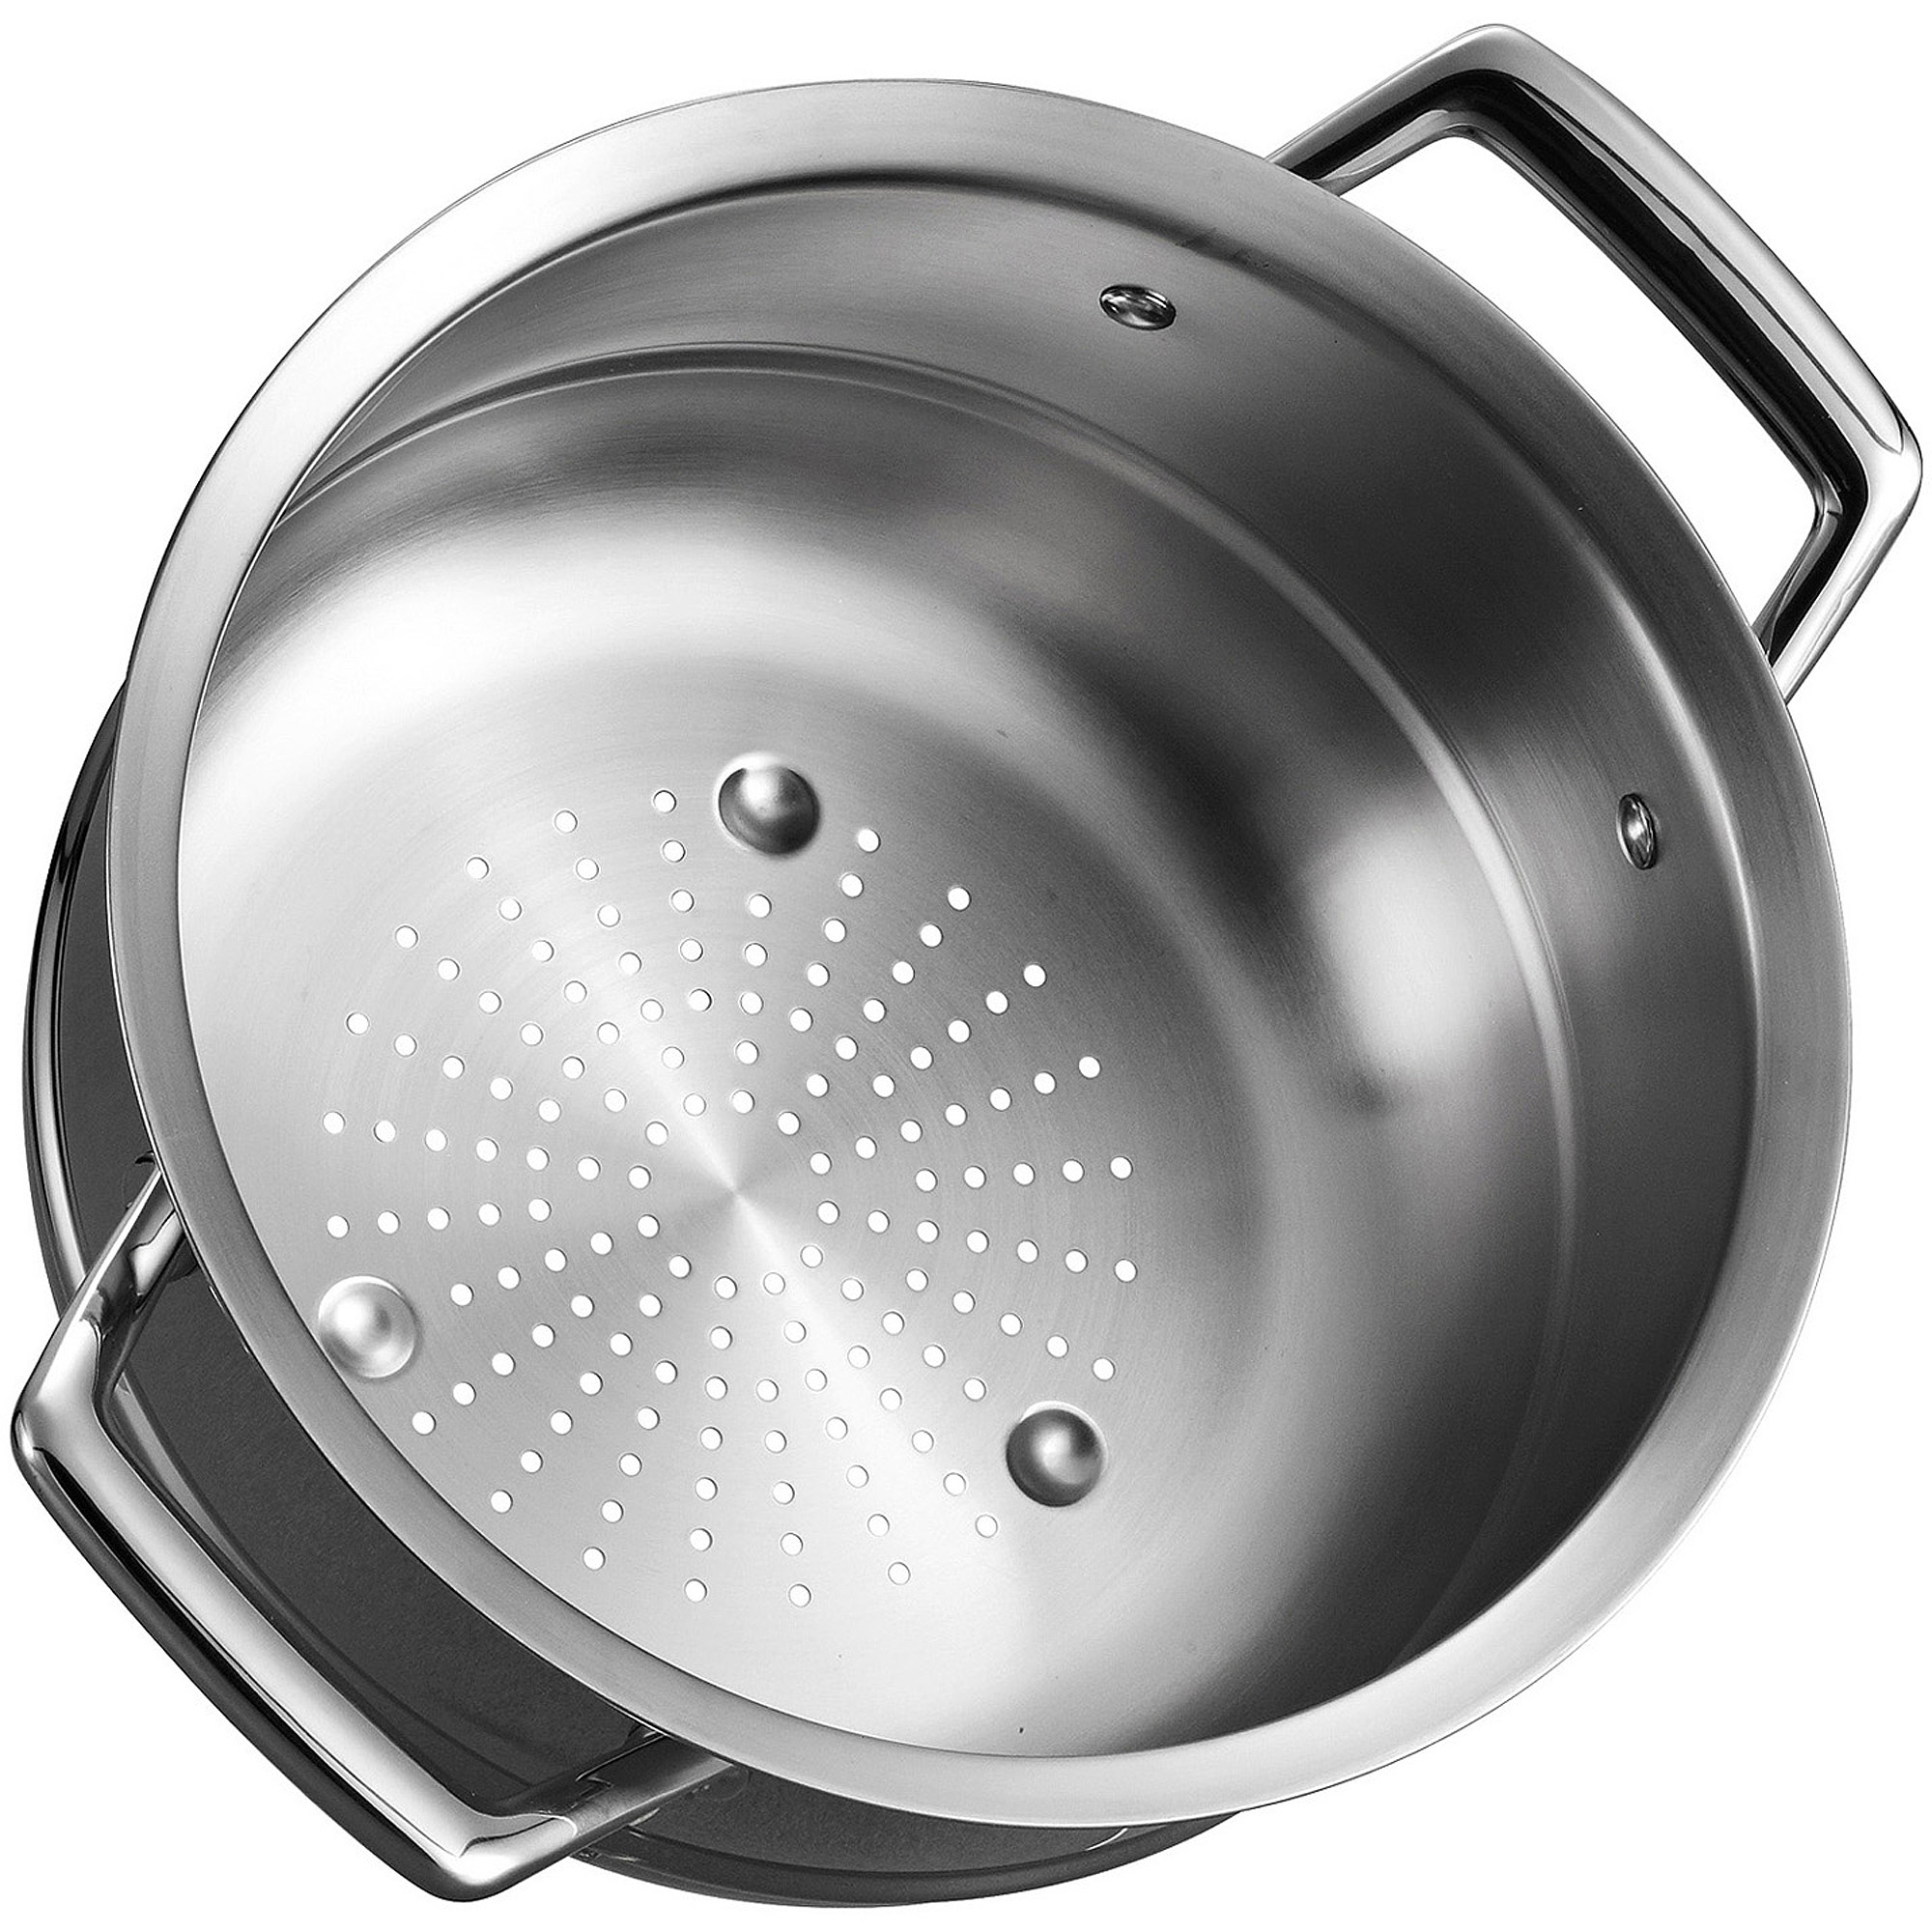 Tramontina Gourmet Prima Steamer Insert (Fits 5 qt Dutch Oven, 6 qt Sauce Pot and 8 qt Stock Pot)